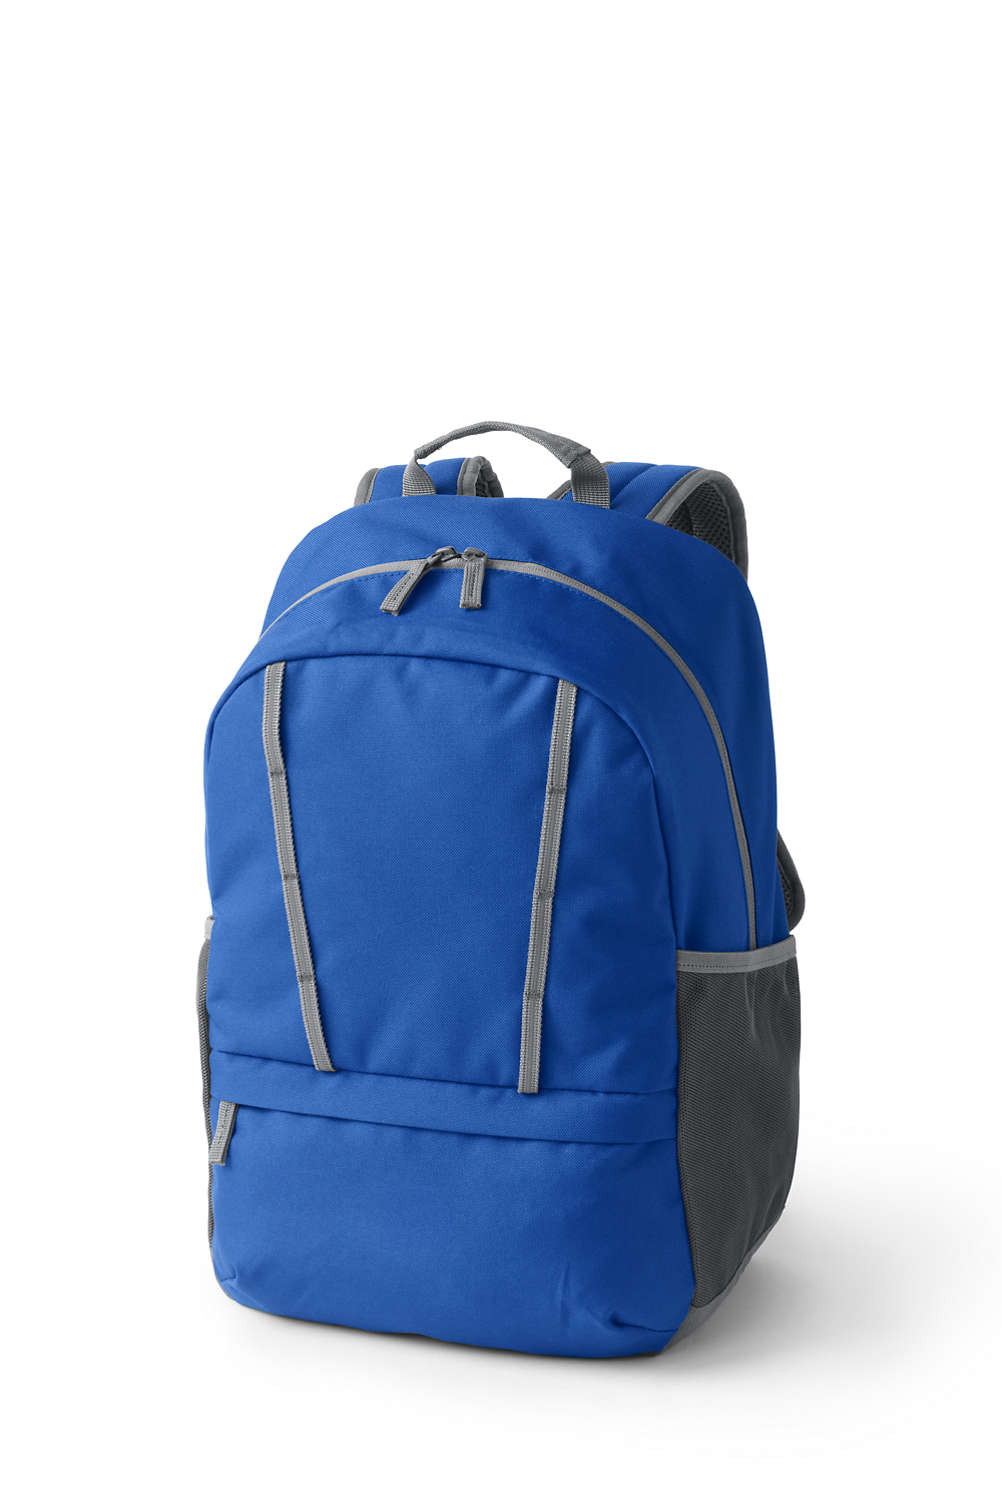 cbdf28cd4 Kids ClassMate Medium Backpack from Lands' End